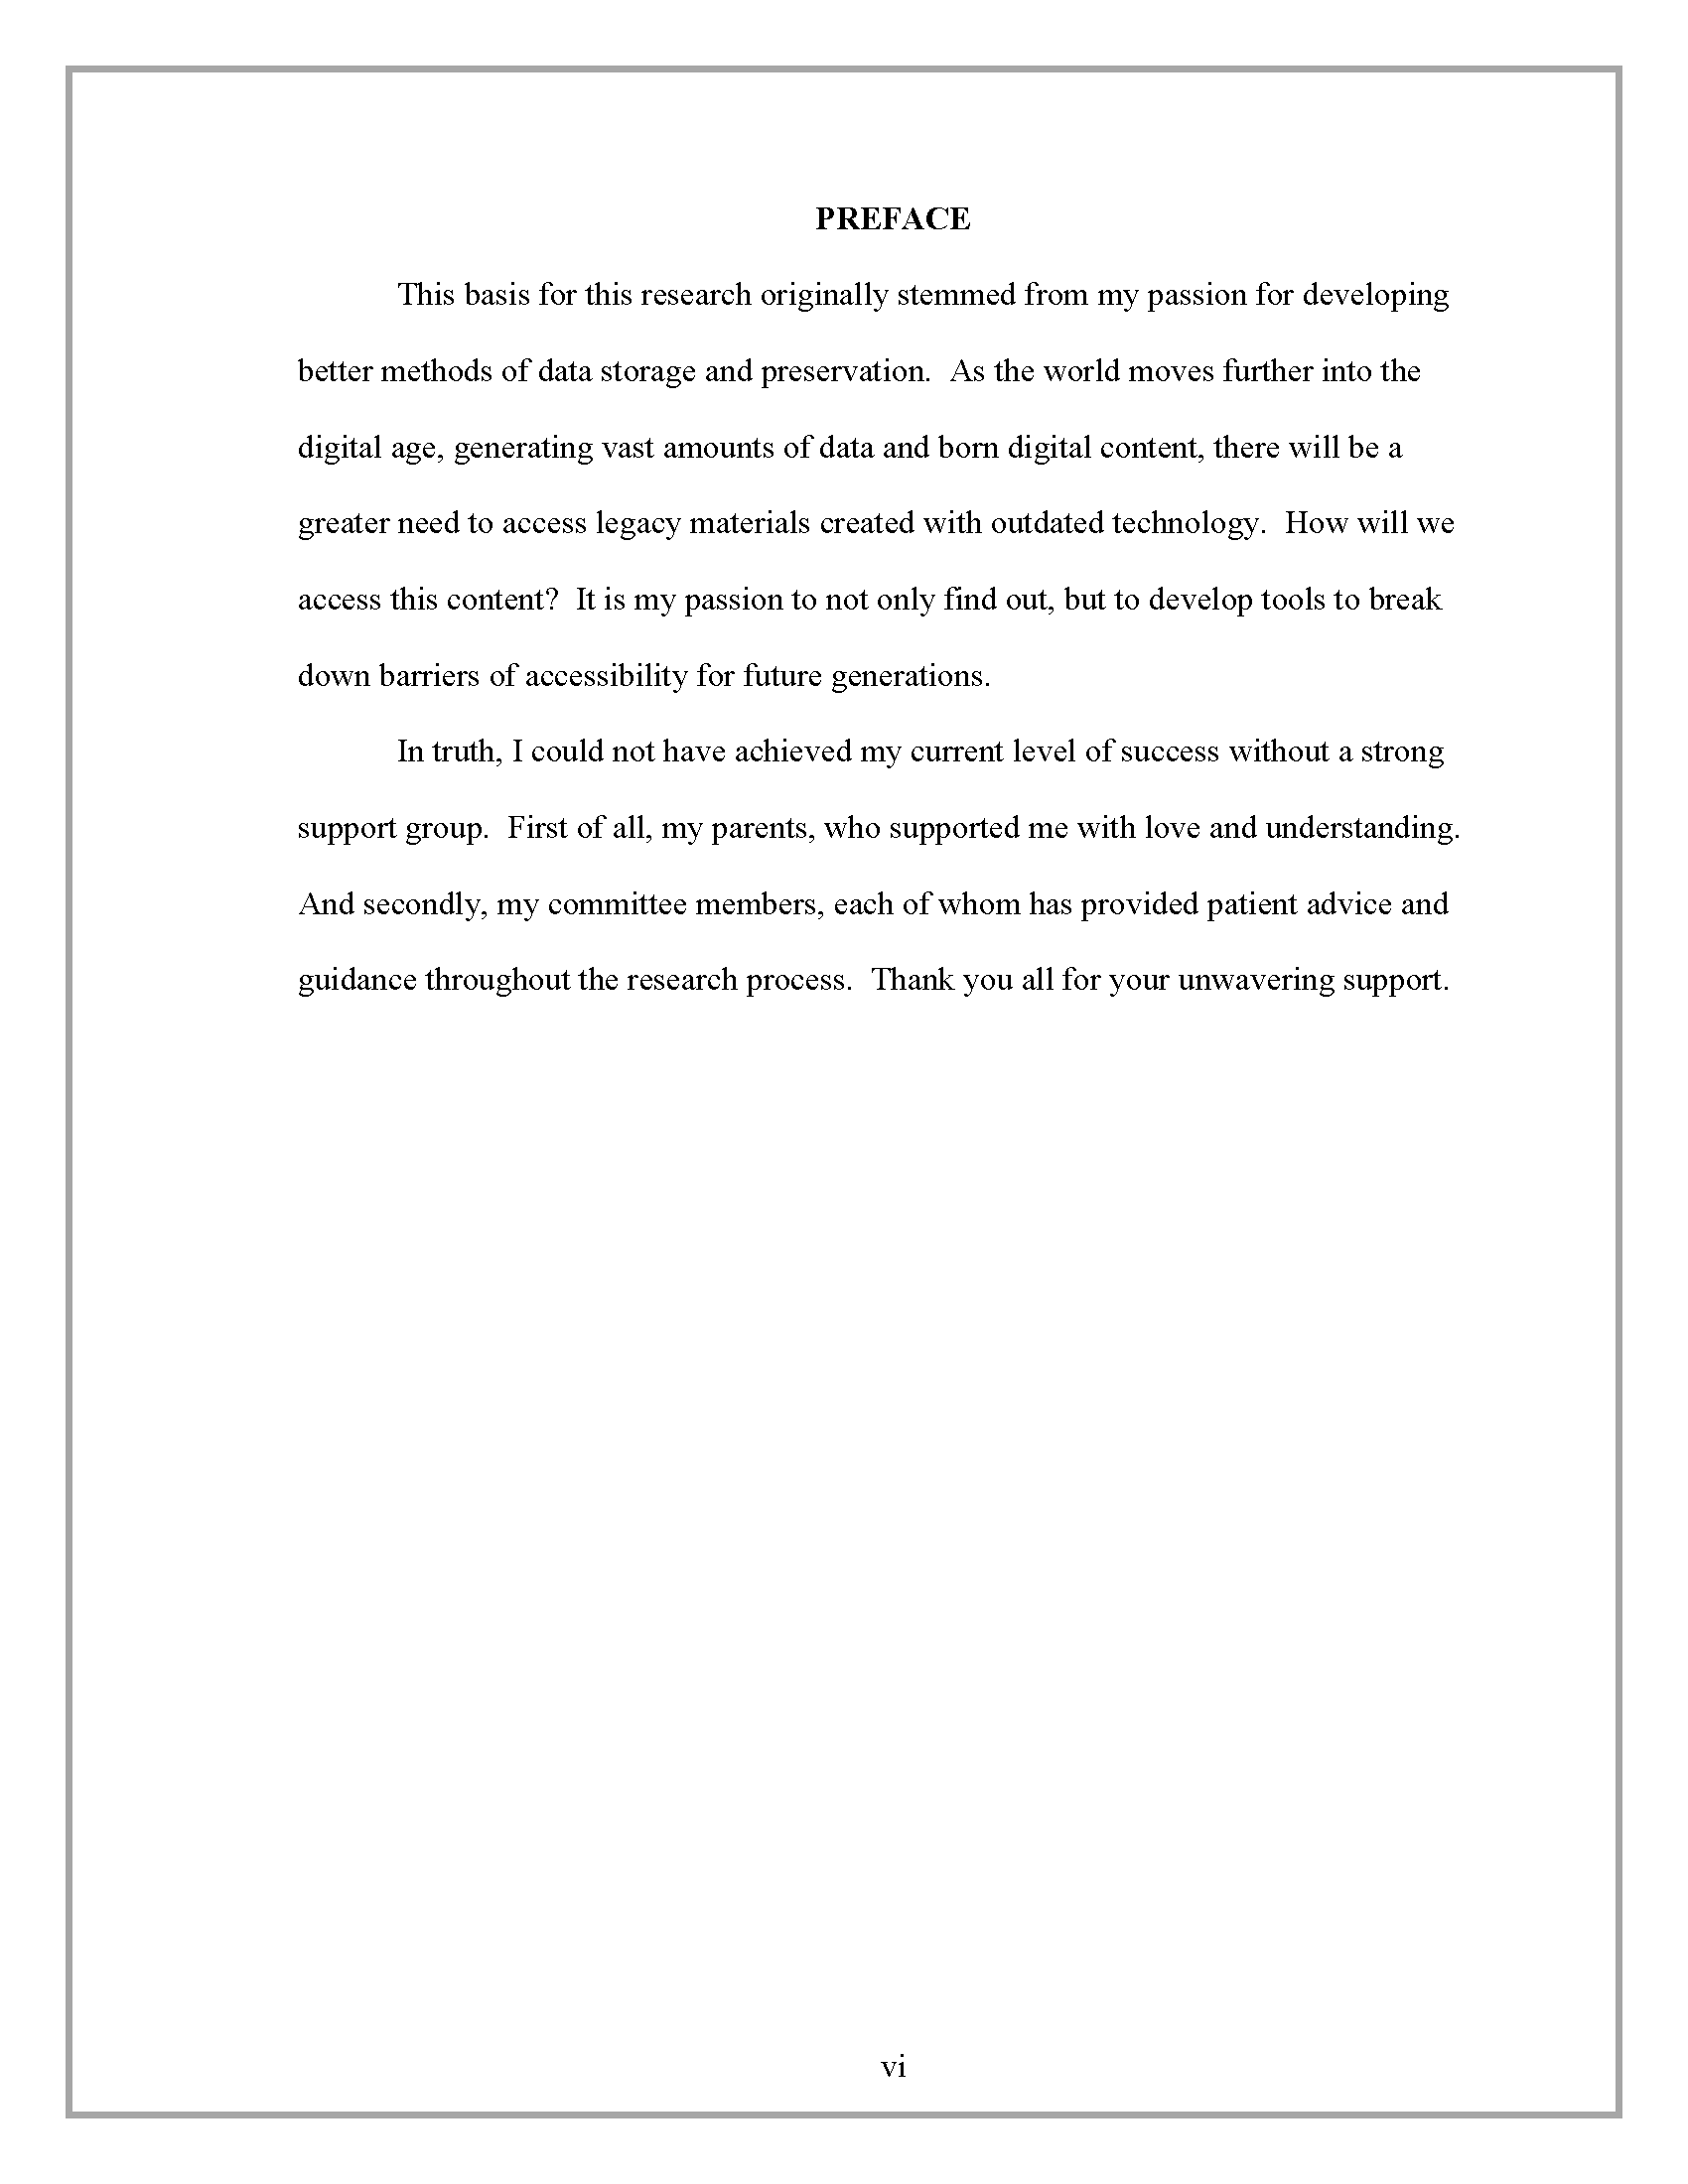 016 Research Paper Preface Border Best Topics In Computer Frightening Science Top 10 Full